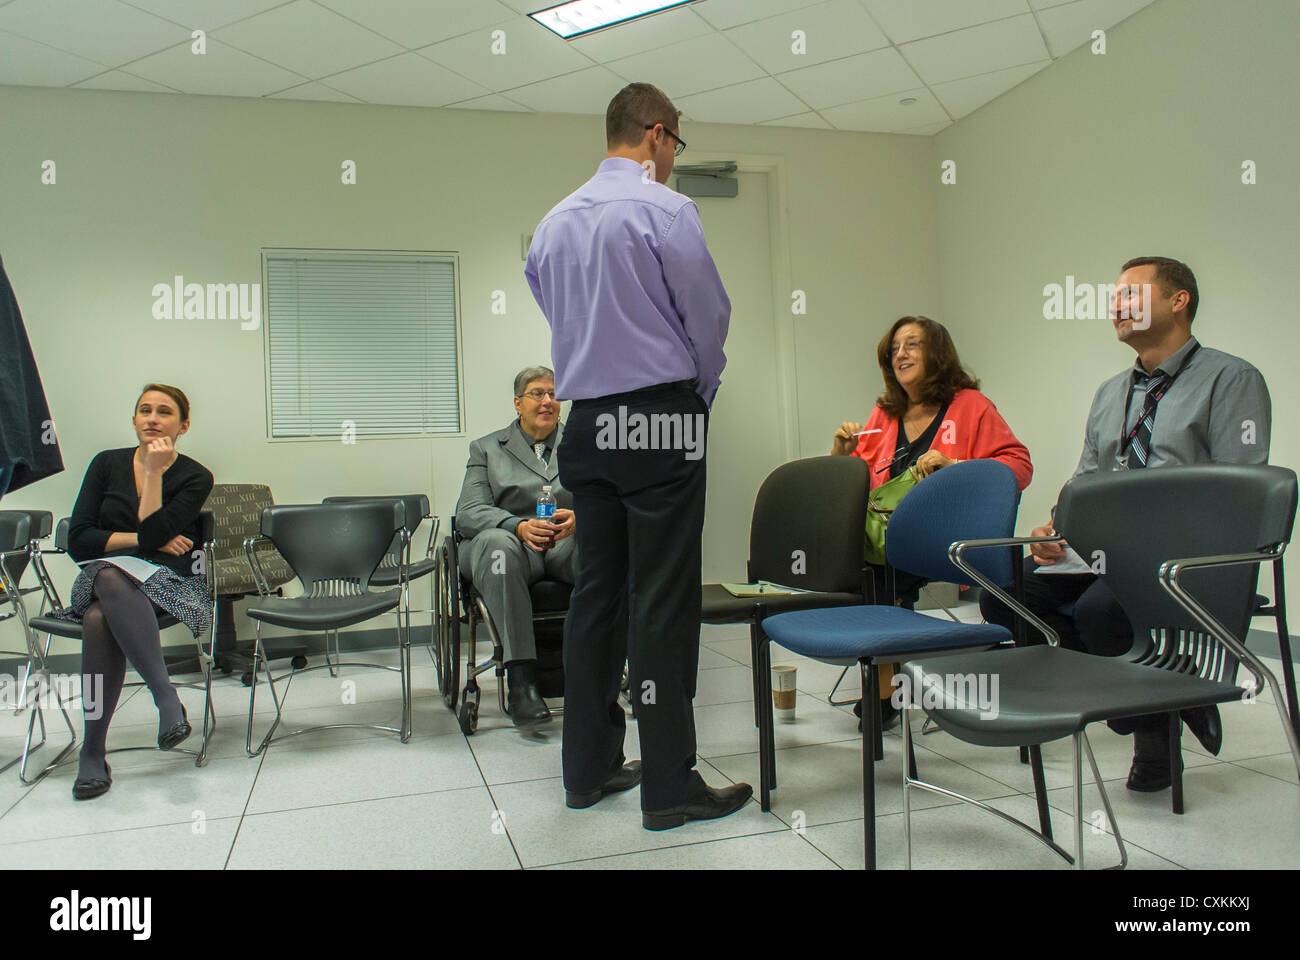 New York, AIDS Association, Gay Men's Health Crisis (GMHC), Meeting, Obamacare, Affordable Care Act, Discussion - Stock Image